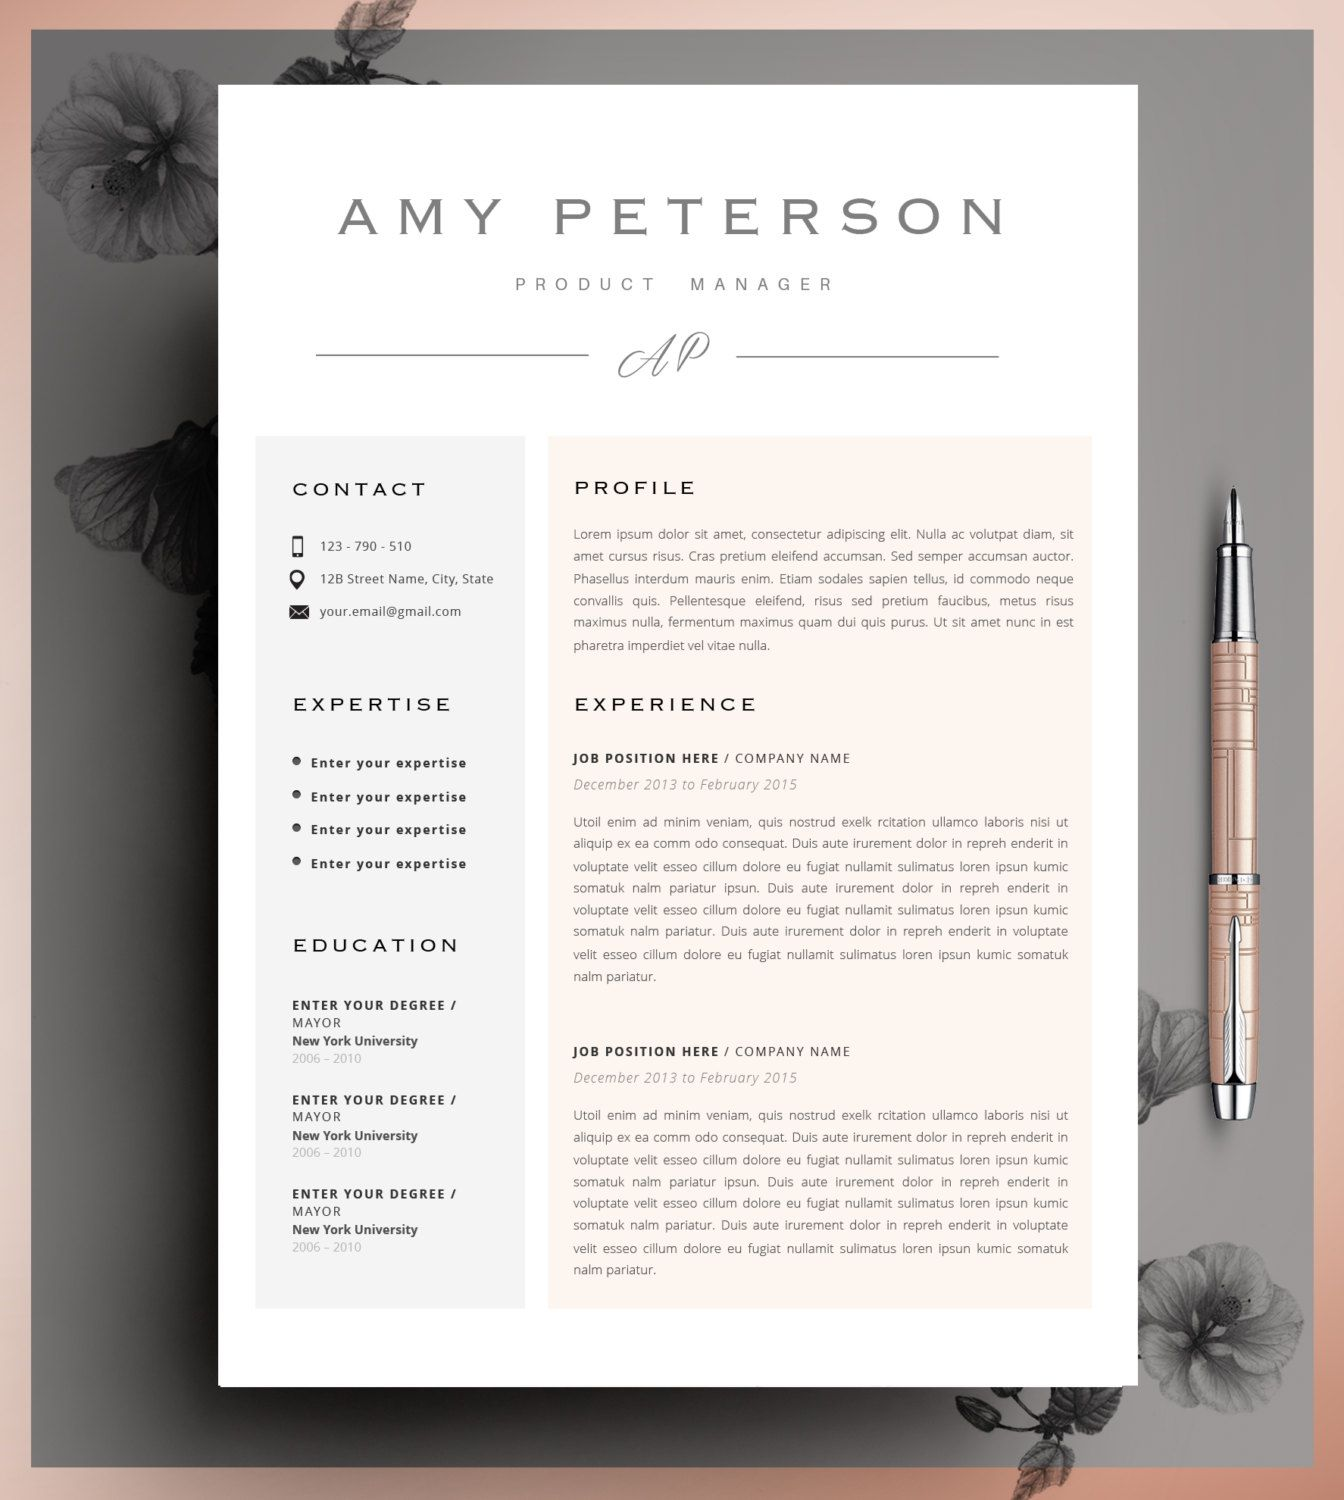 Professional Cv Curriculum Vitae 2 Page Resume Simple Etsy Creative Resume Templates Resume Layout Creative Resume